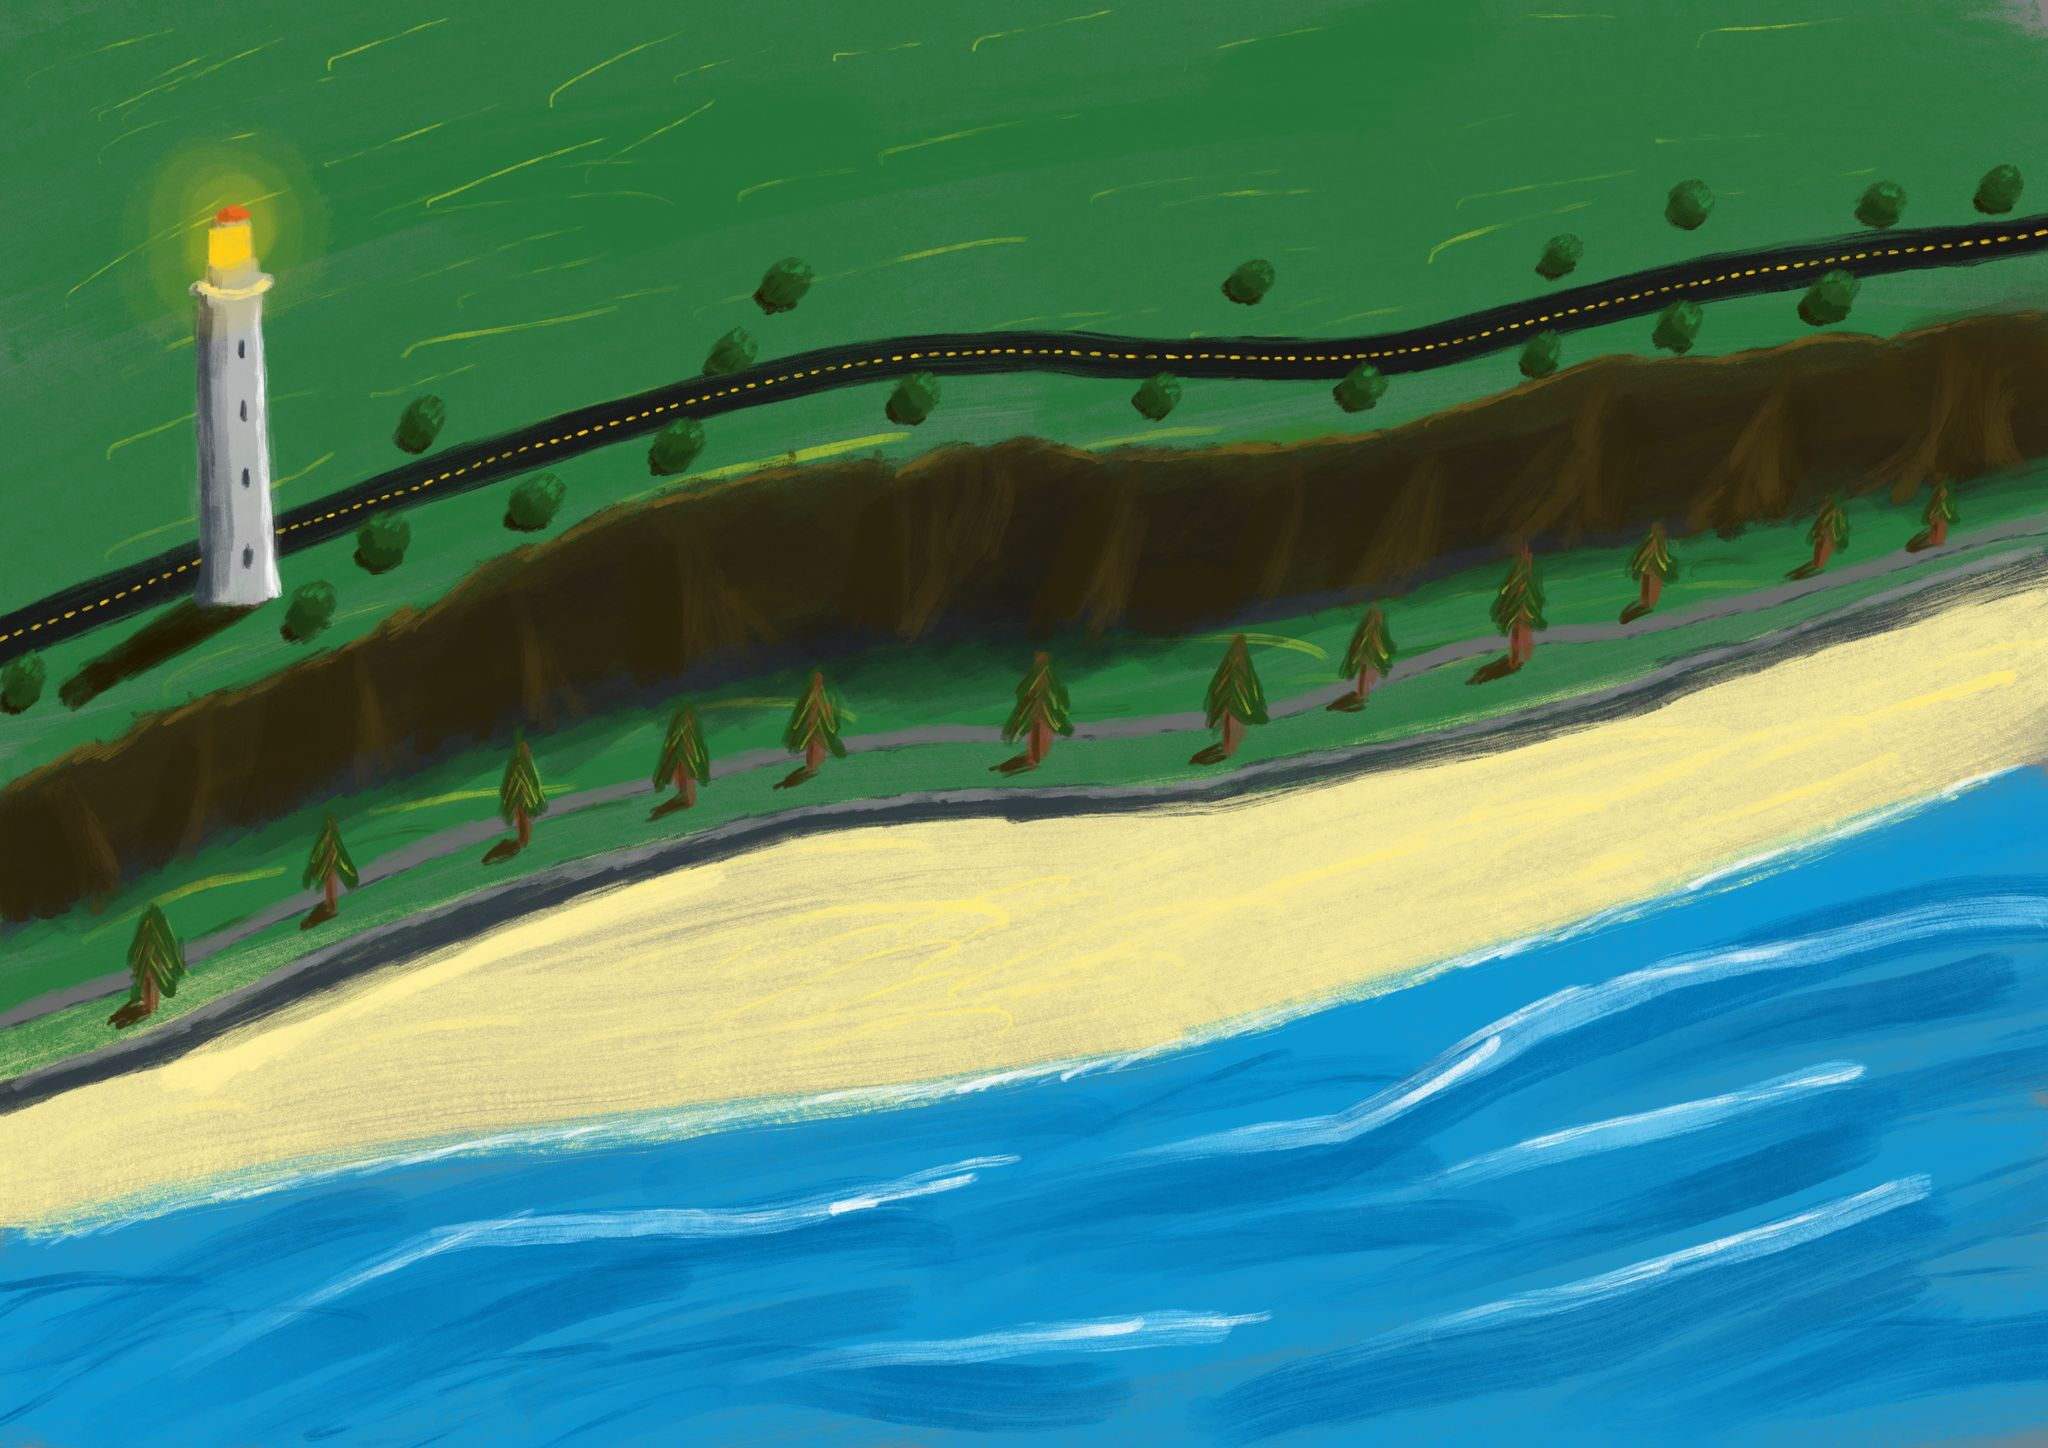 A digital painting of the view of a beach from the air, running left to right, with a row of trees in grass above that, then a pathway, then a cliff, some short bushes at the cliff edge, and a two-lane road. At the left is a white lighthouse.